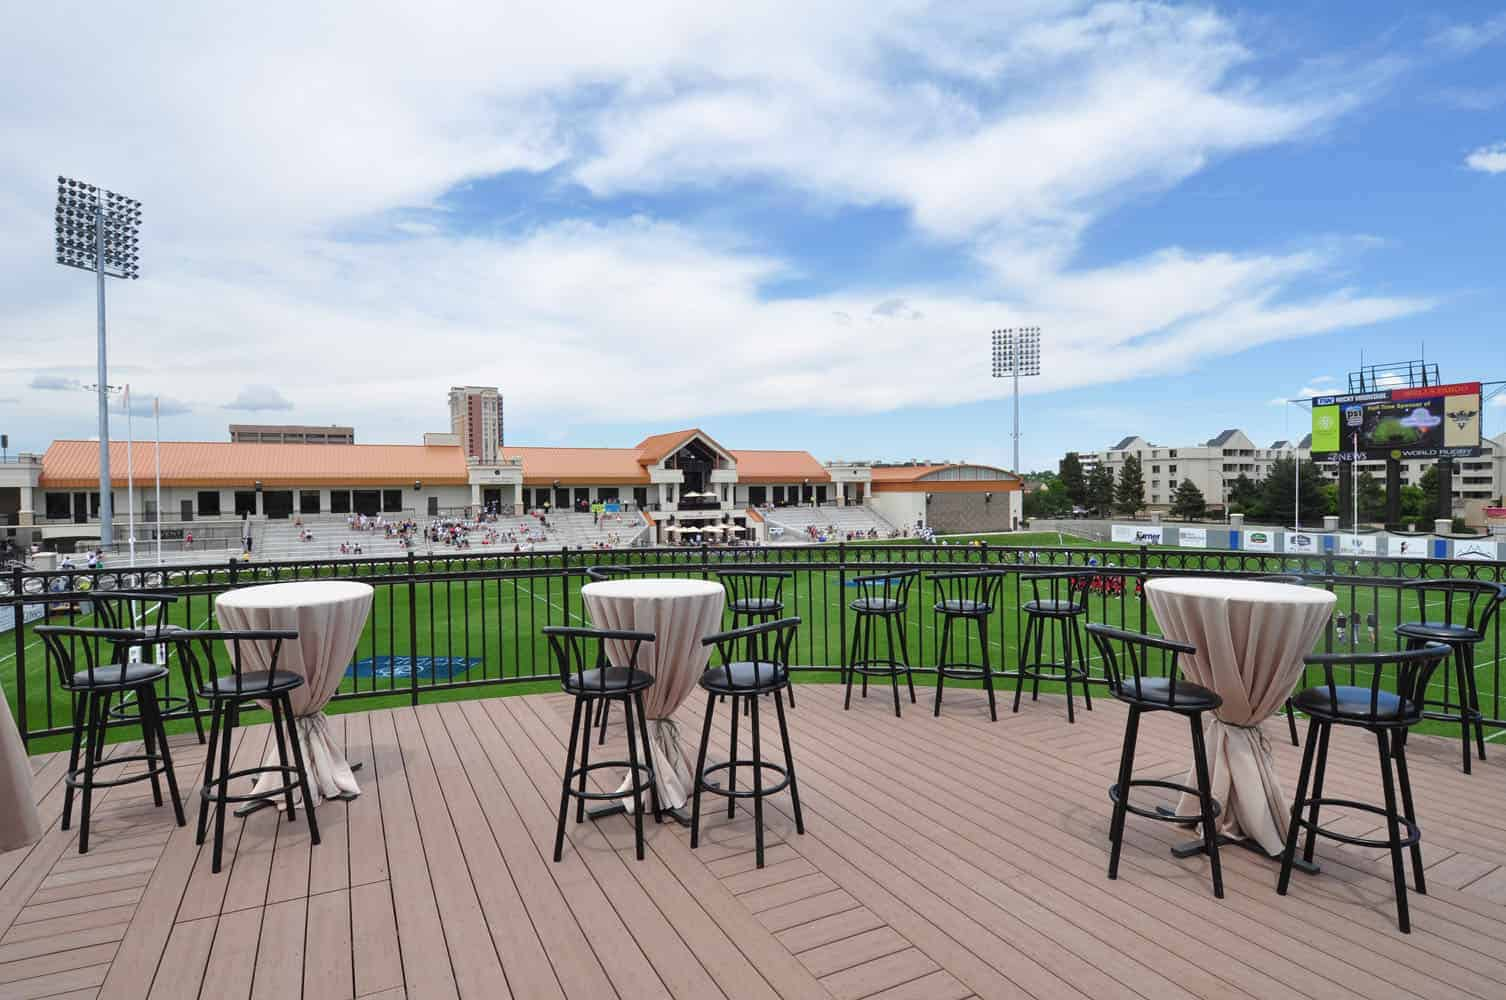 The Terrace Outdoor Event Space at Infinity Park